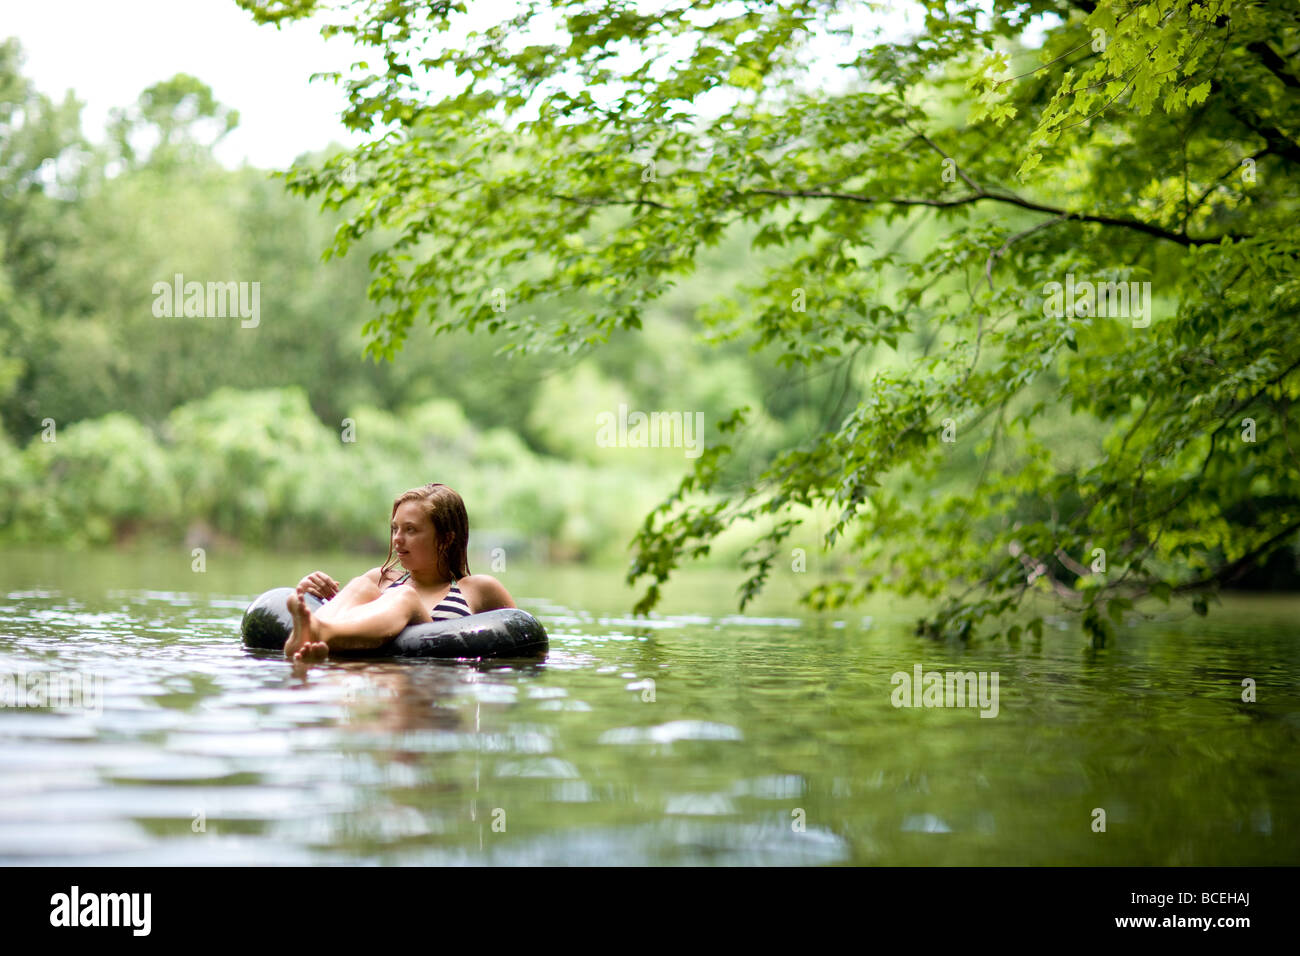 Teenage Girl sitting alone in the water in an innertube - Stock Image